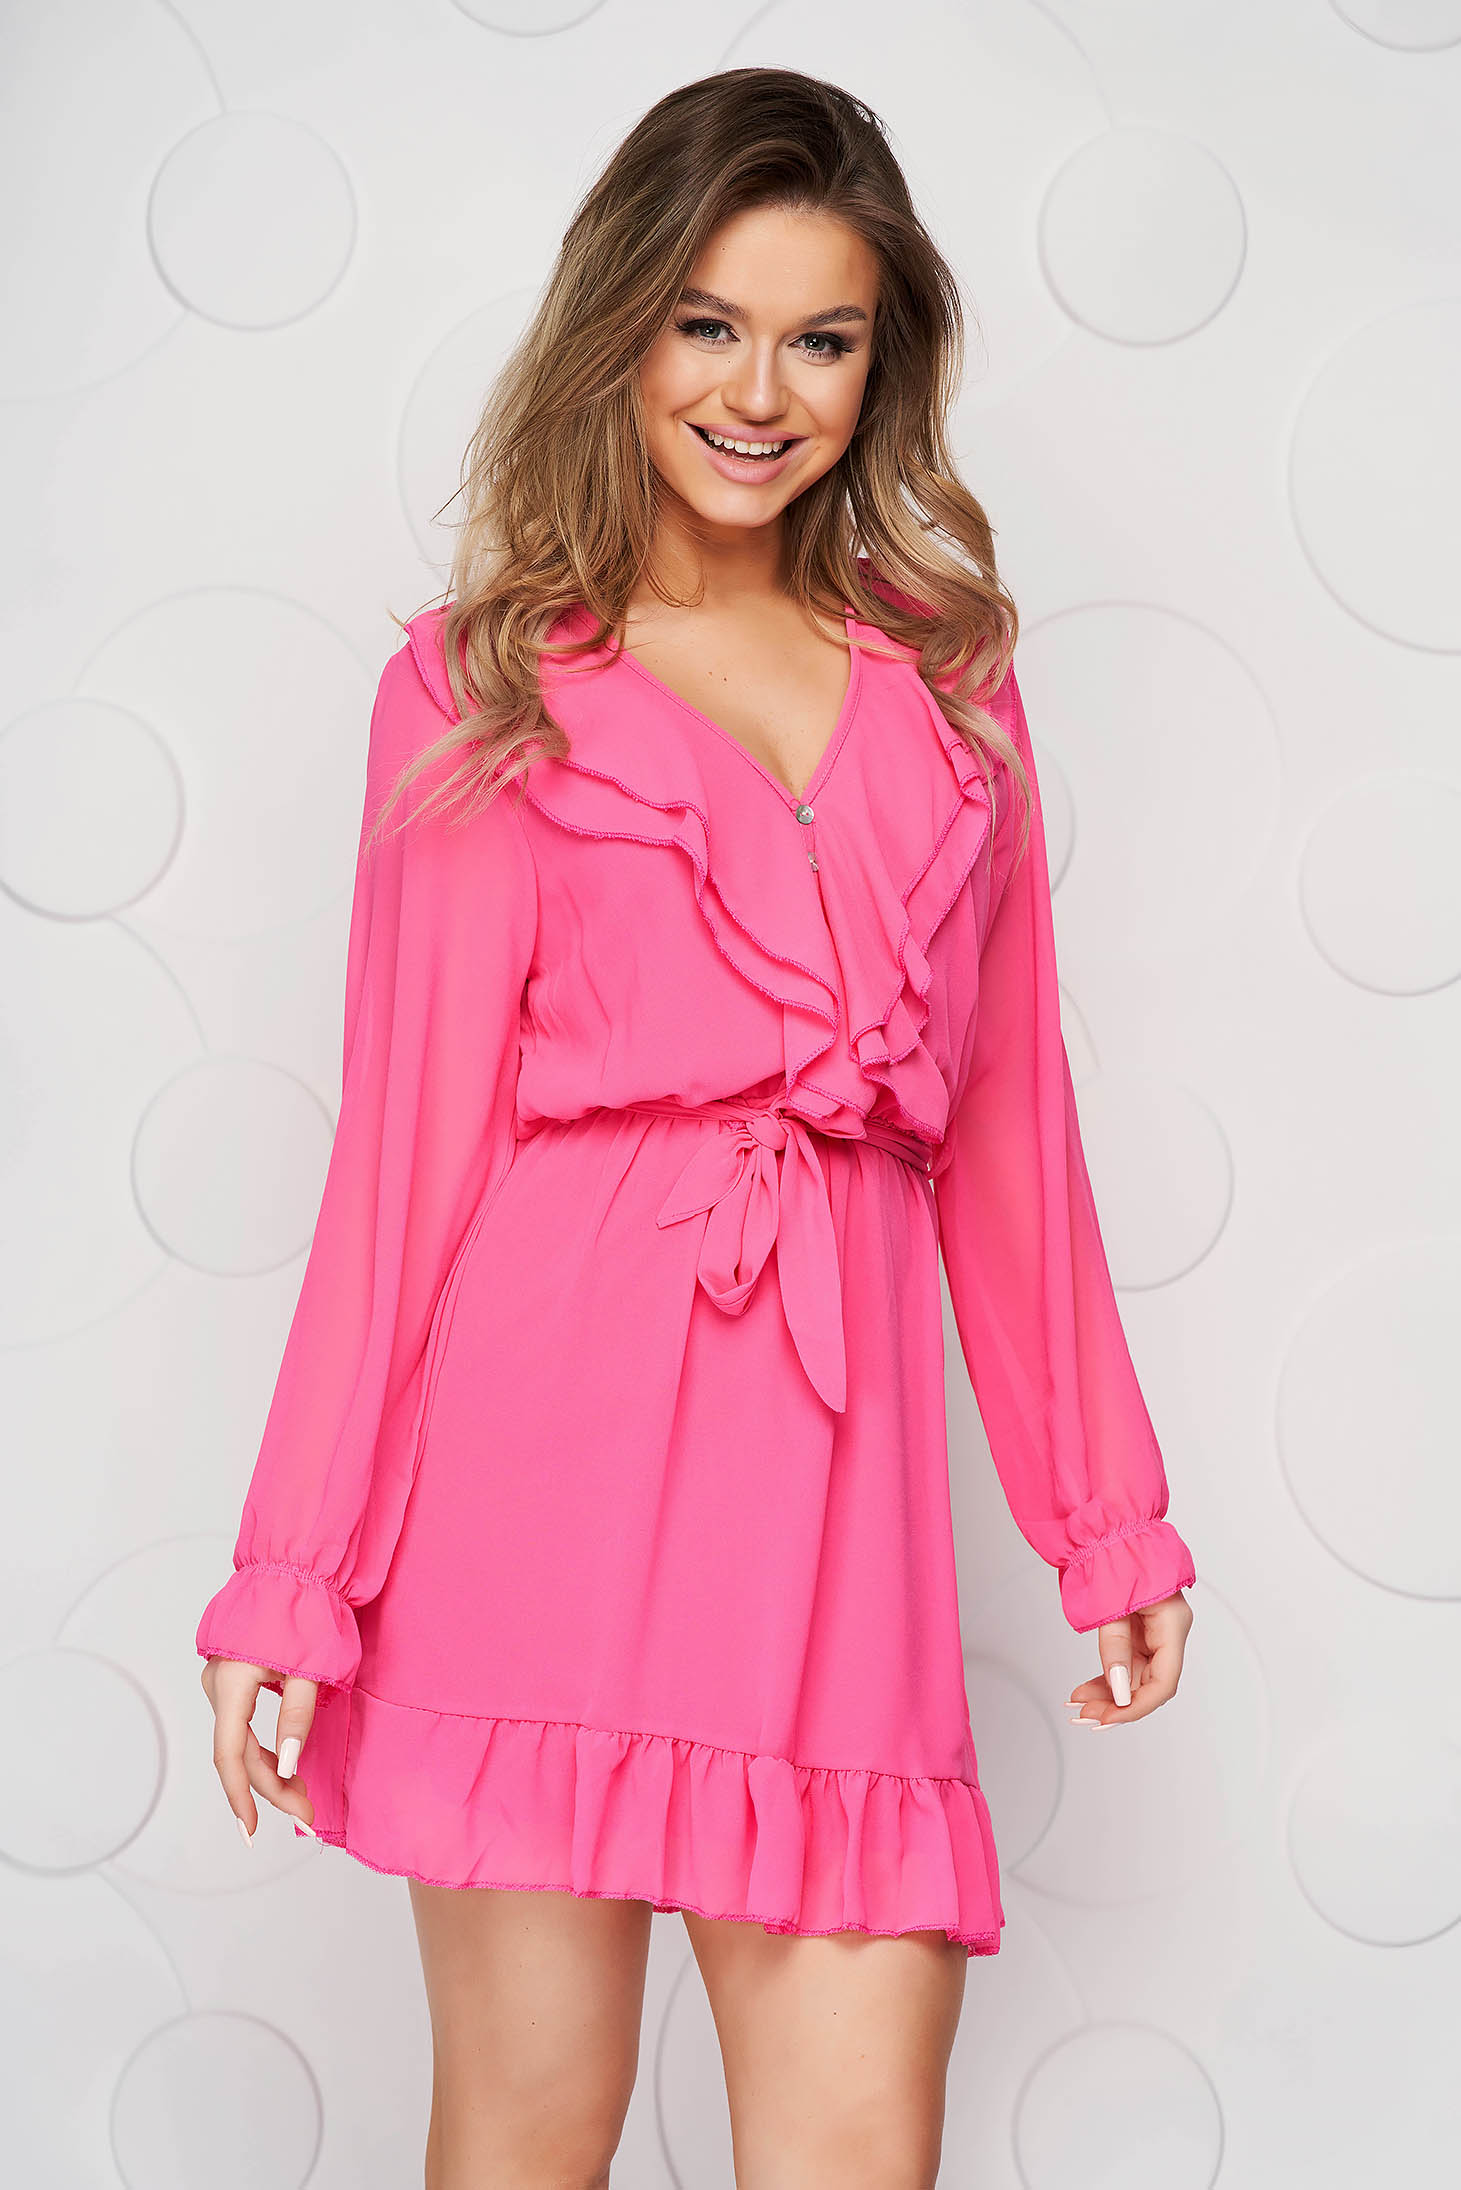 Fuchsia dress short cut elegant from veil fabric with ruffles at the buttom of the dress cloche with elastic waist